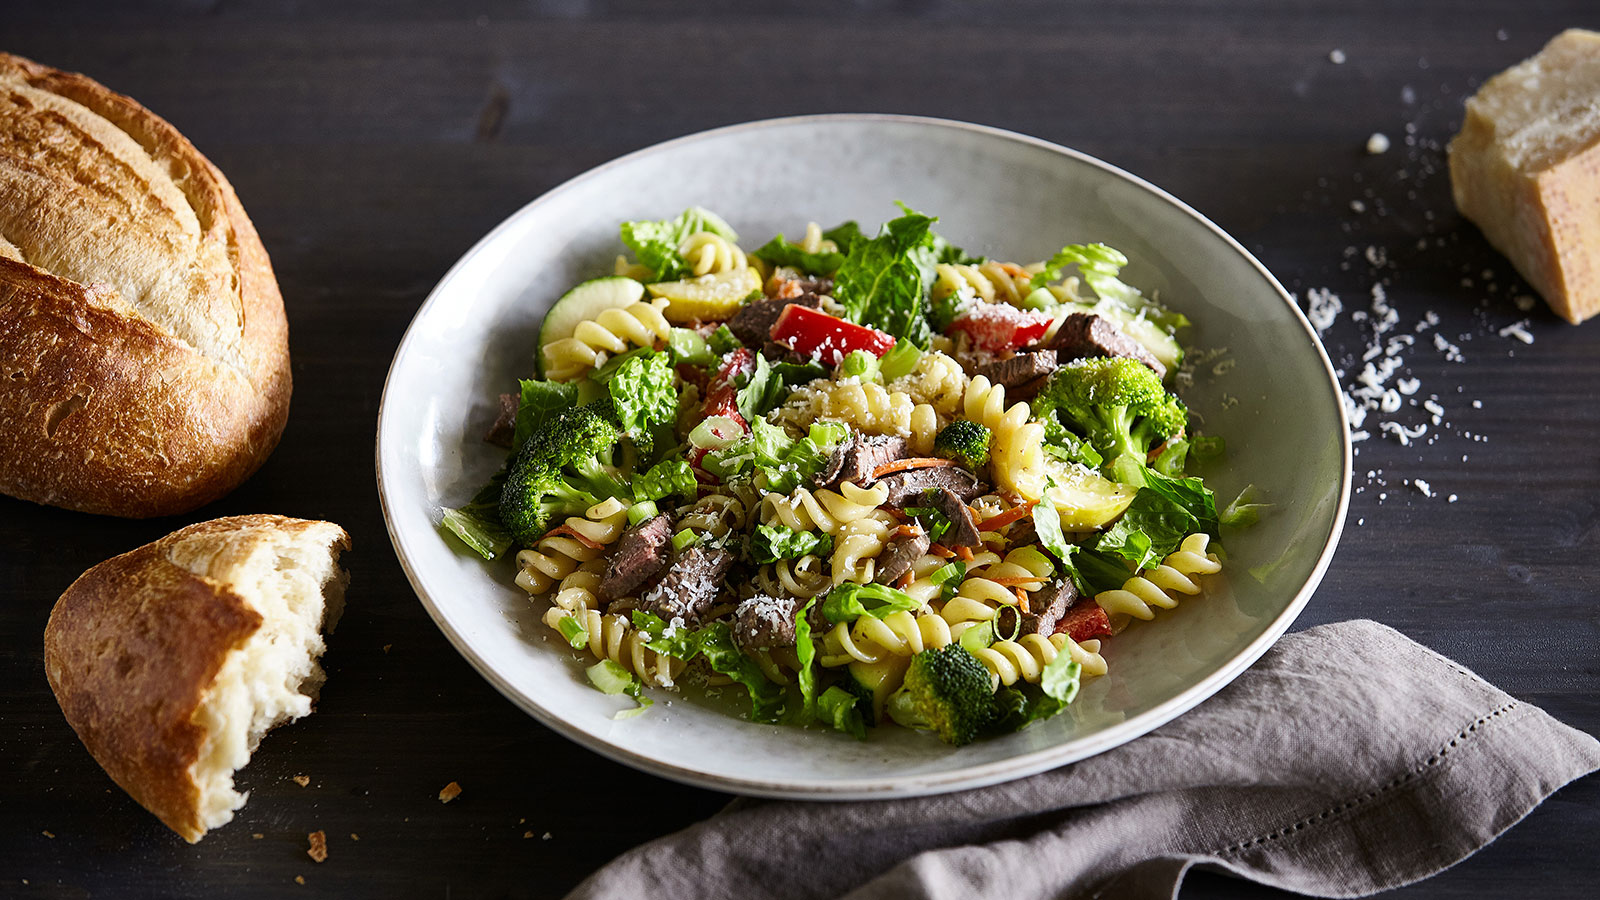 Steak-and-Veggie-Pasta-Caesar-Salad